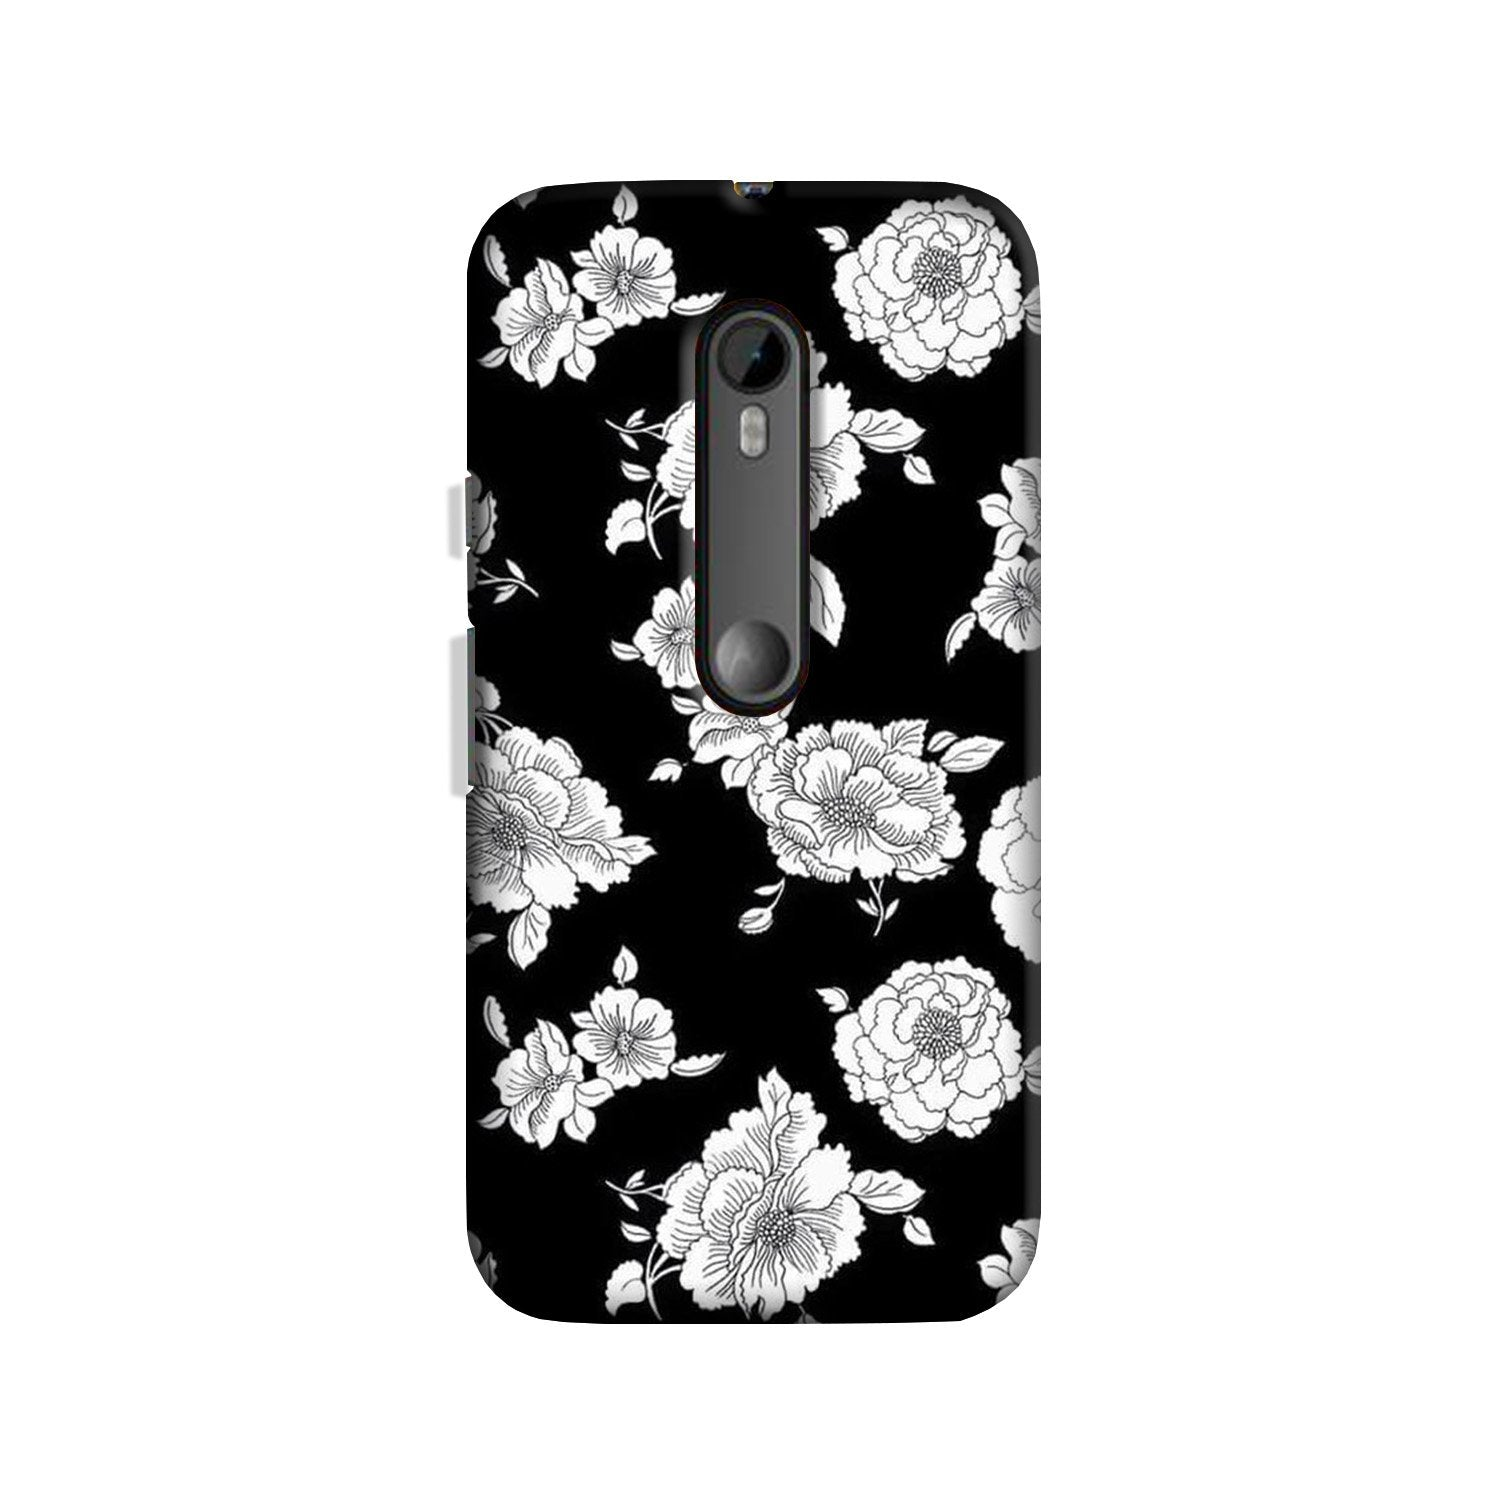 White flowers Black Background Case for Moto G 3rd Gen